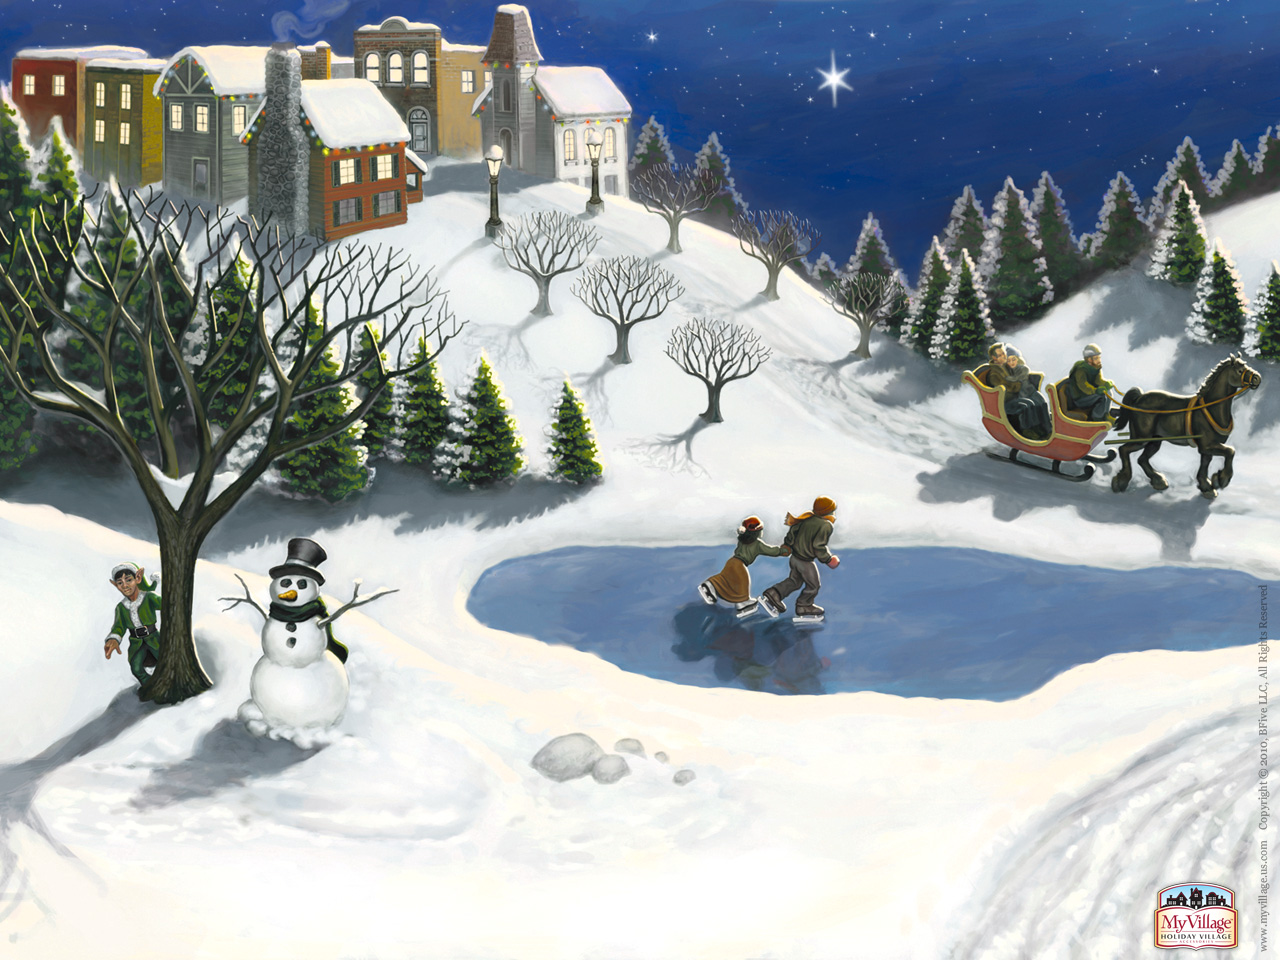 Village Backgrounds   Bring Your Christmas Village Halloween Village 1280x960